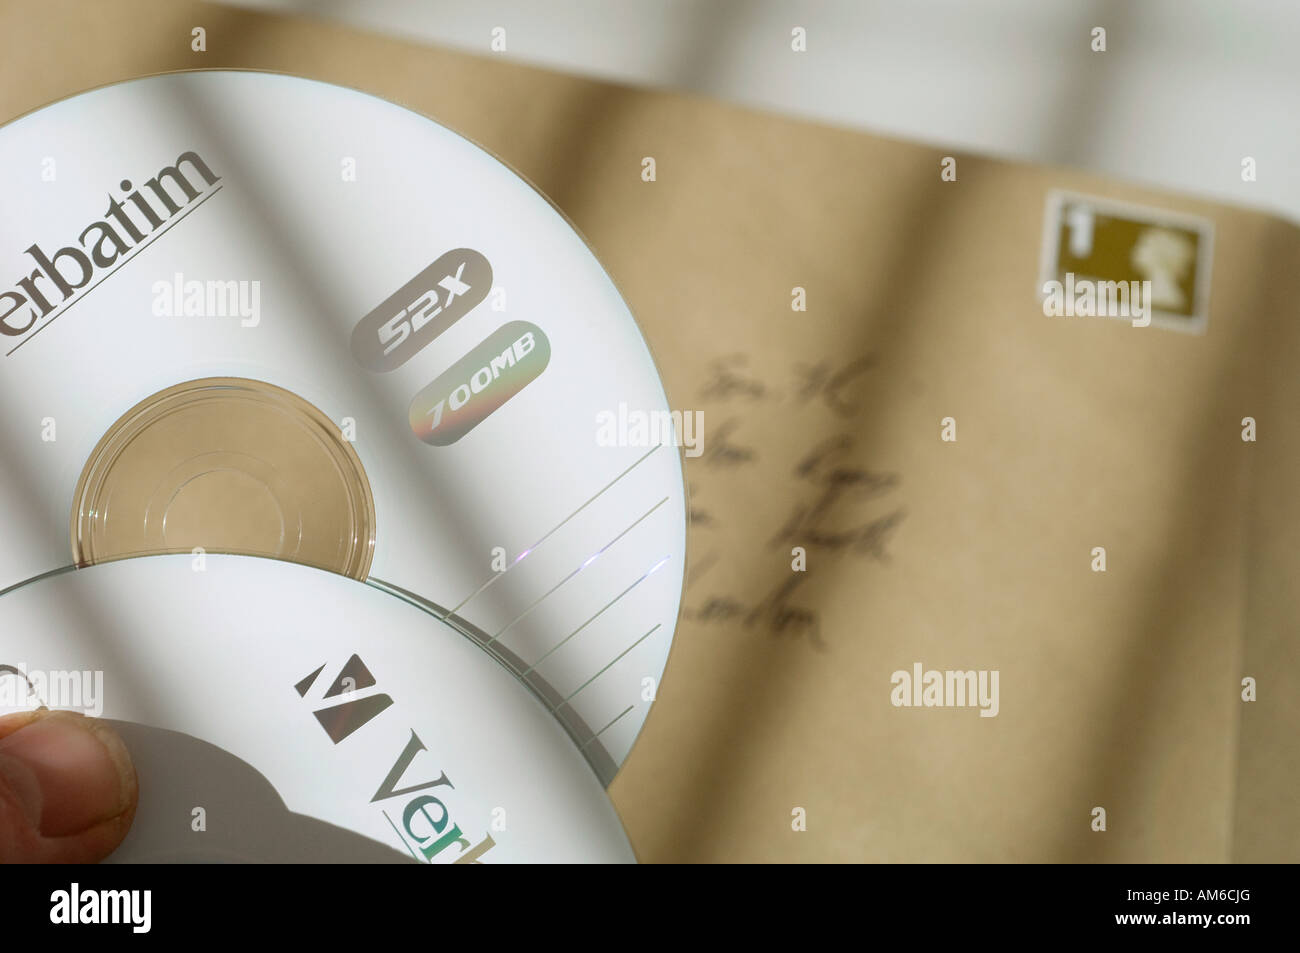 Two computer data discs being put in an envelope. Picture by Jim Holden. Stock Photo